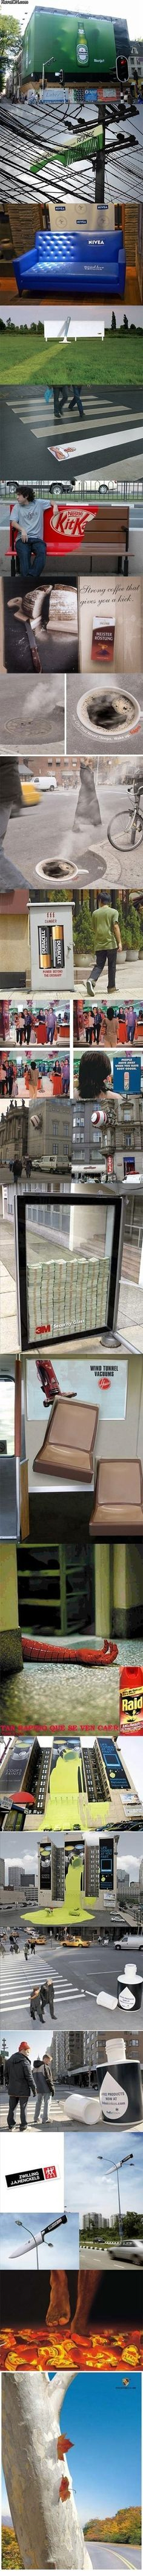 Clever and creative advertisment